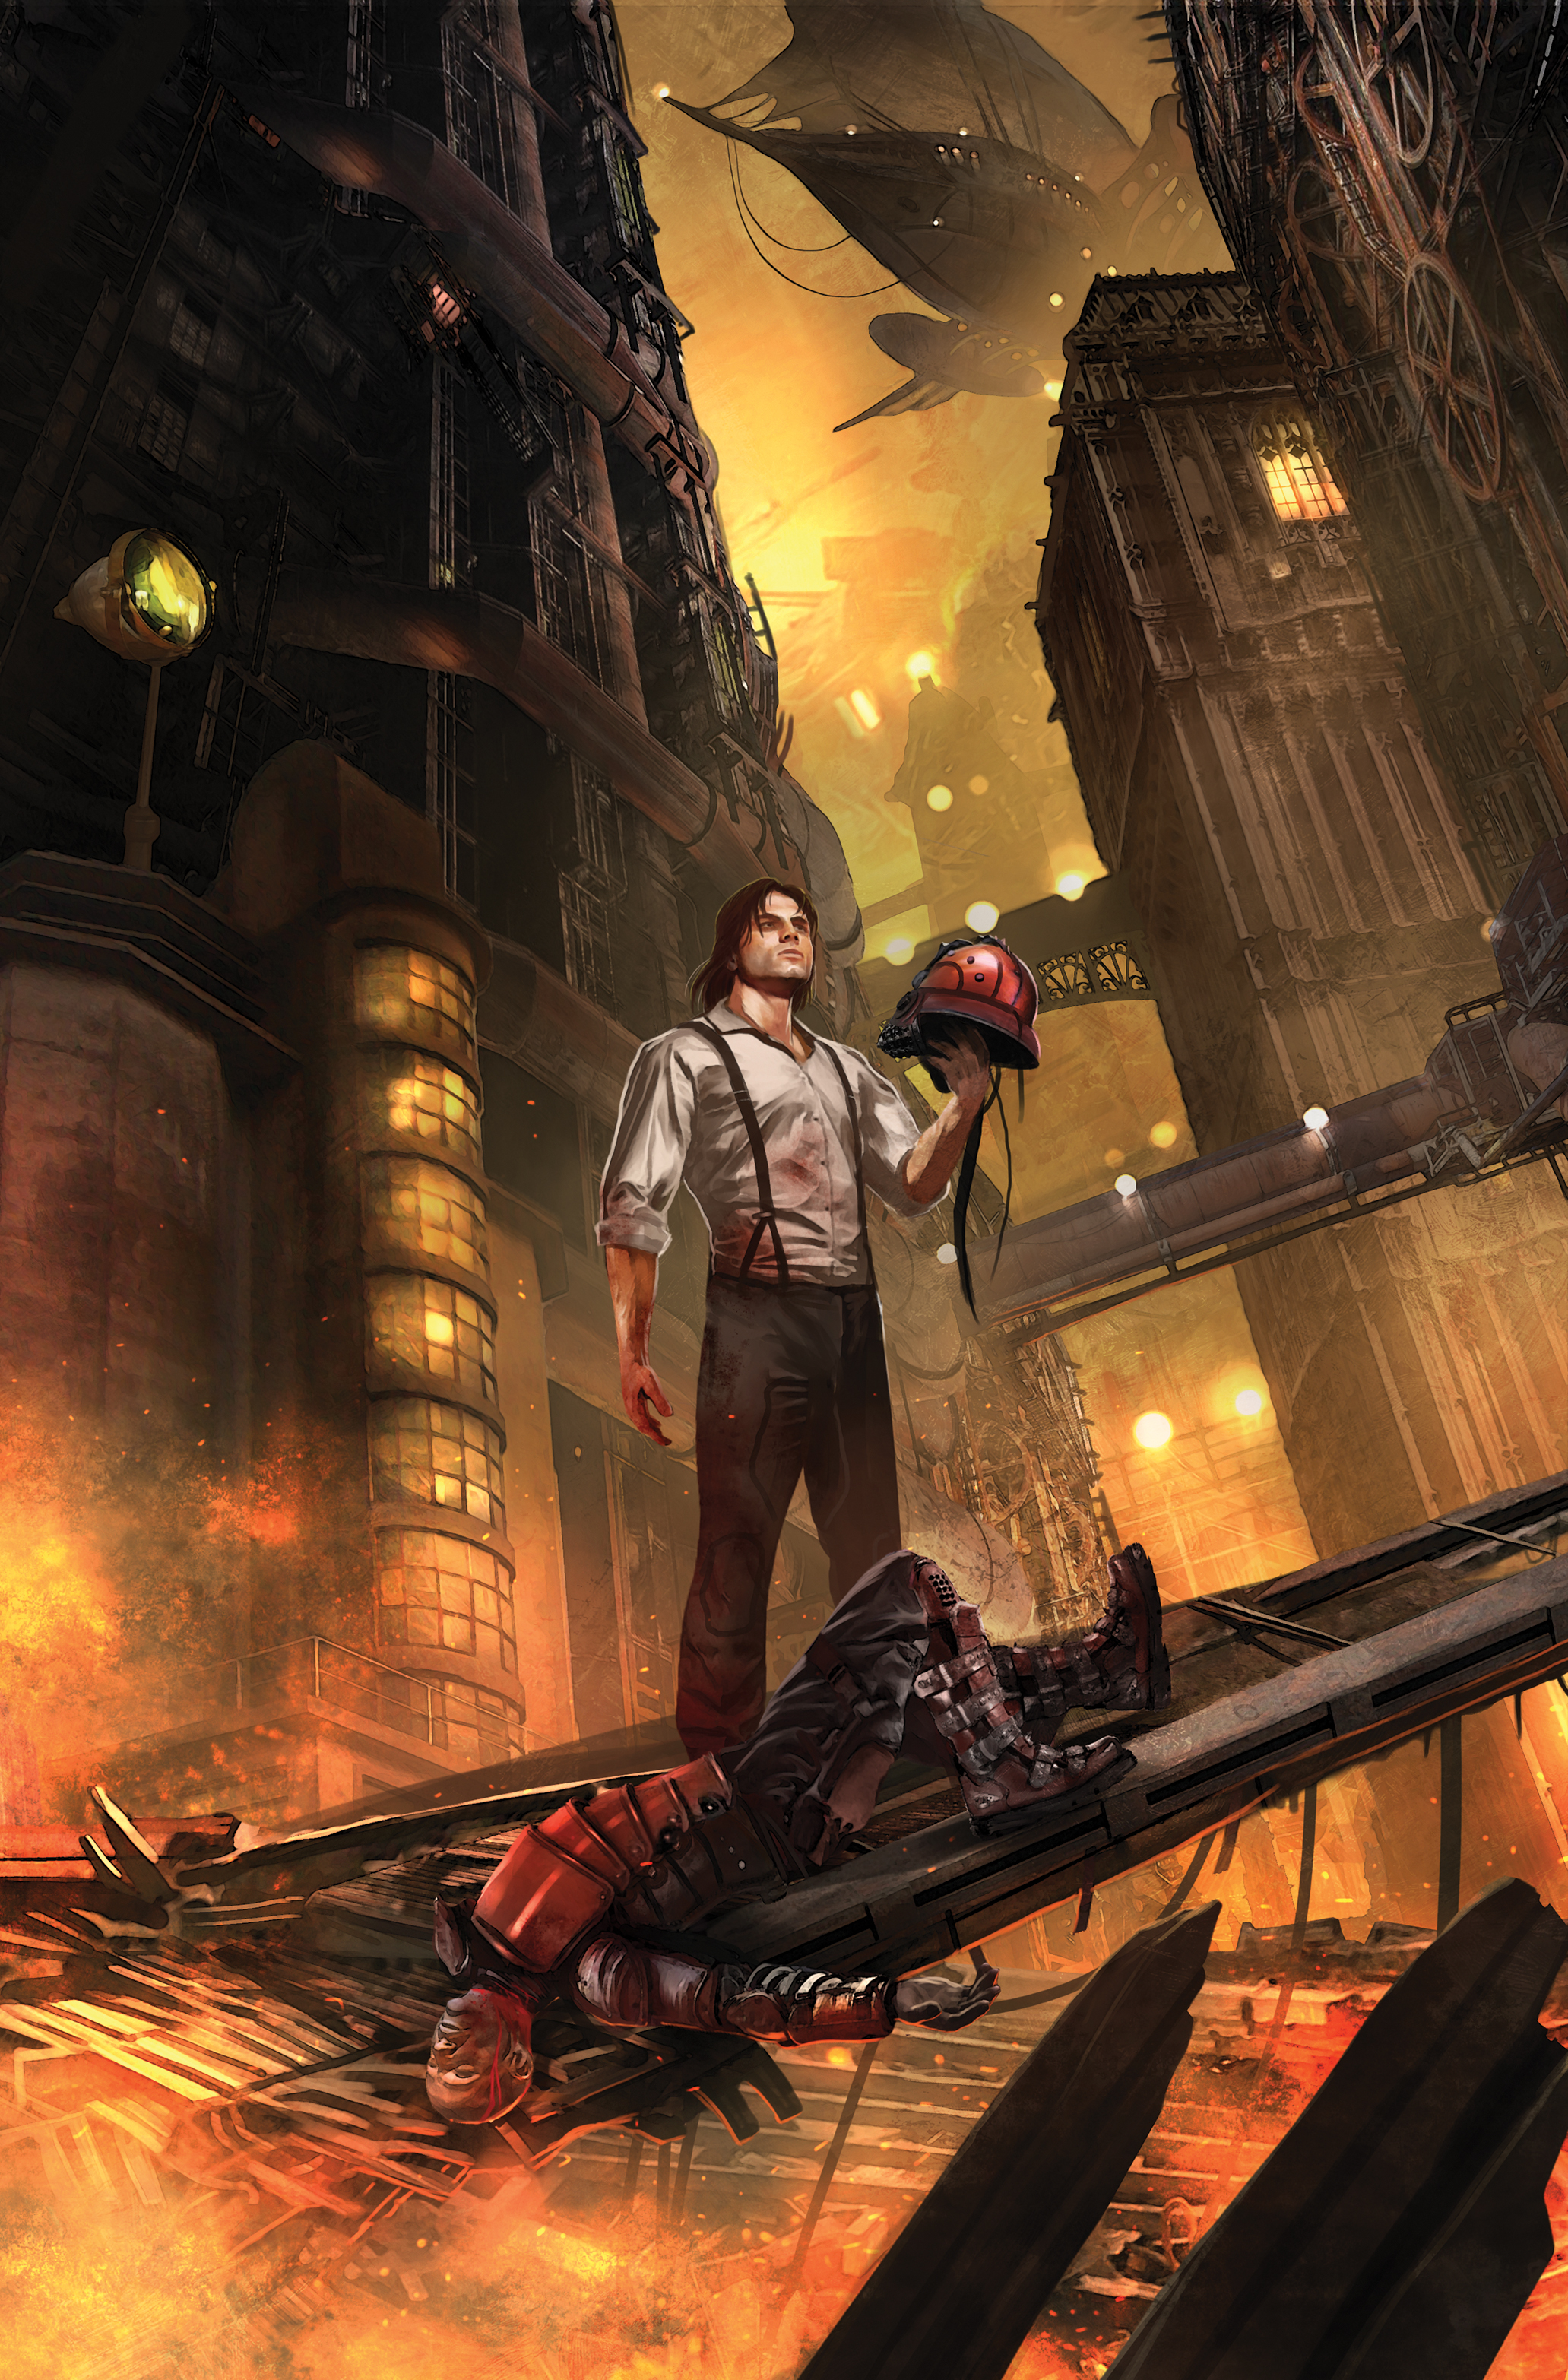 Lantern City #1 Main Cover